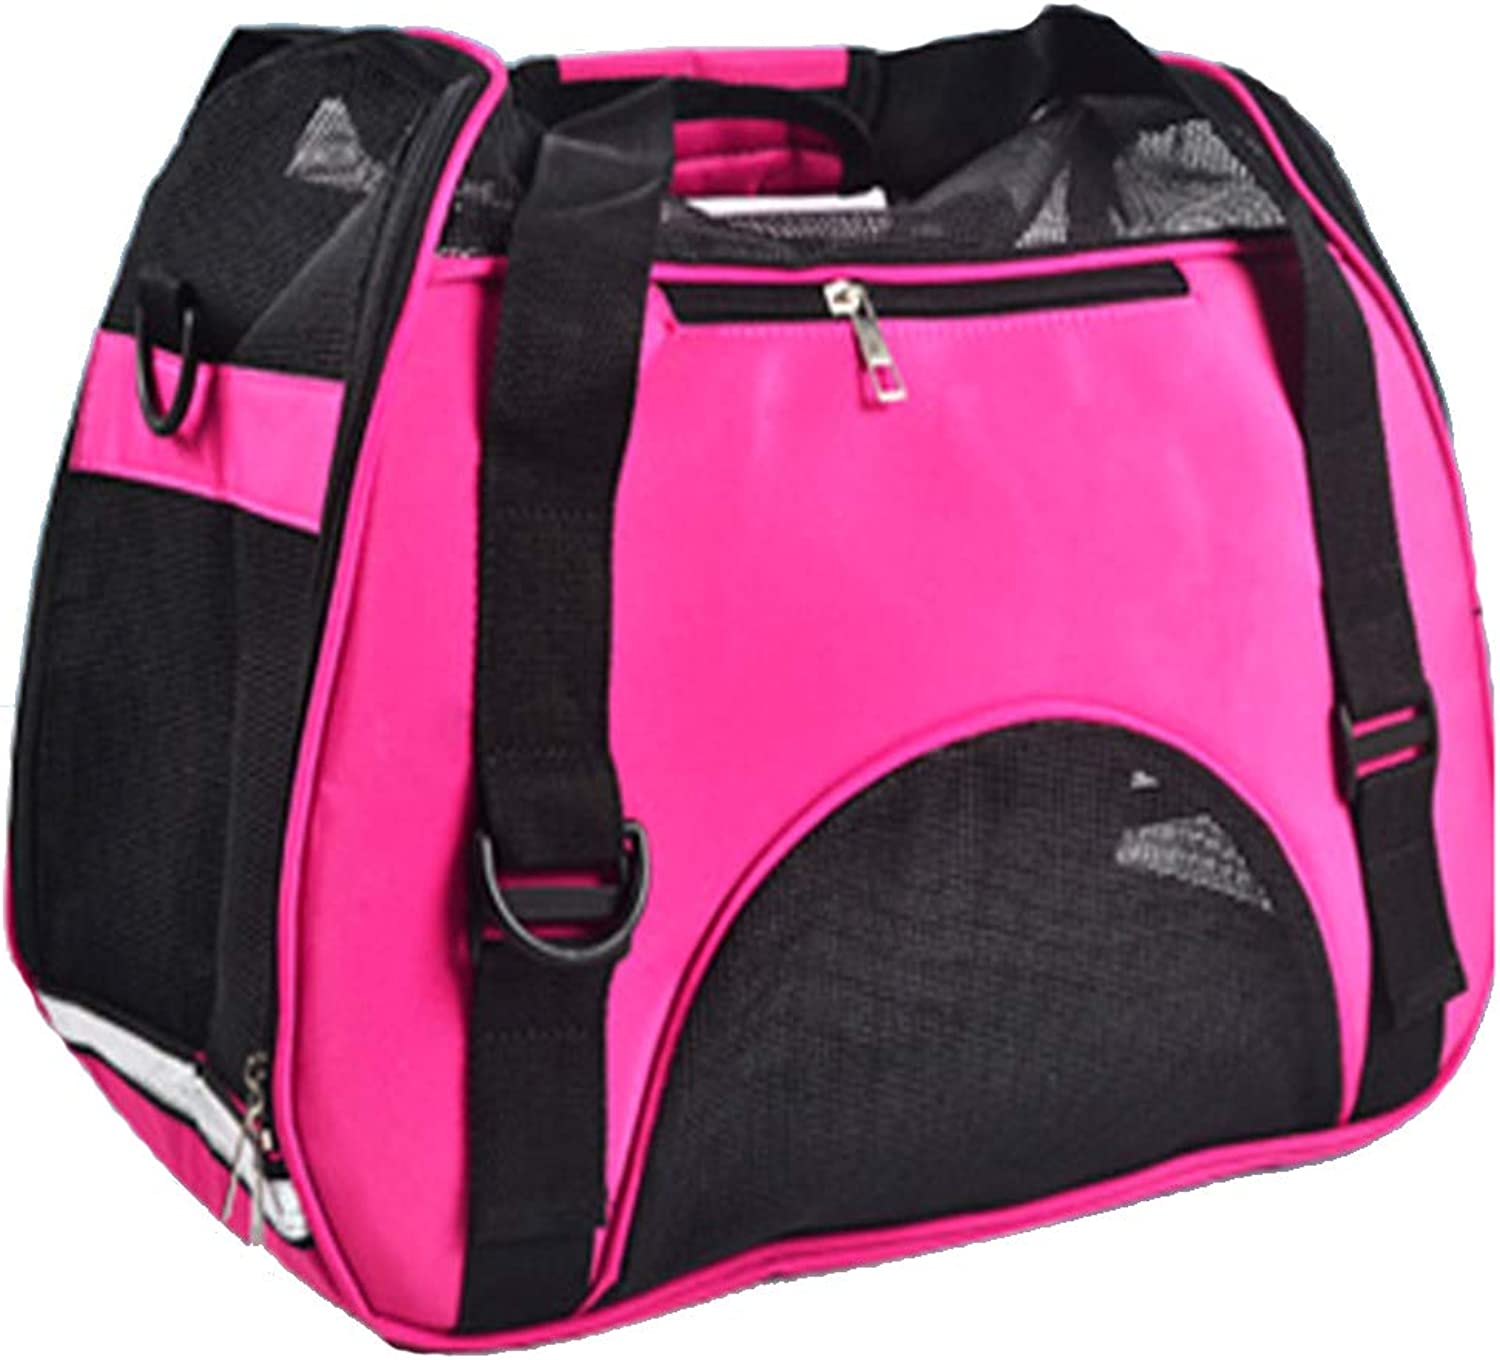 Pet Carrier for Dogs -, Cats, Airline Authority Portable Travel Bag Crate Perfect for Small /Medium Animals, Puppies, Kittens